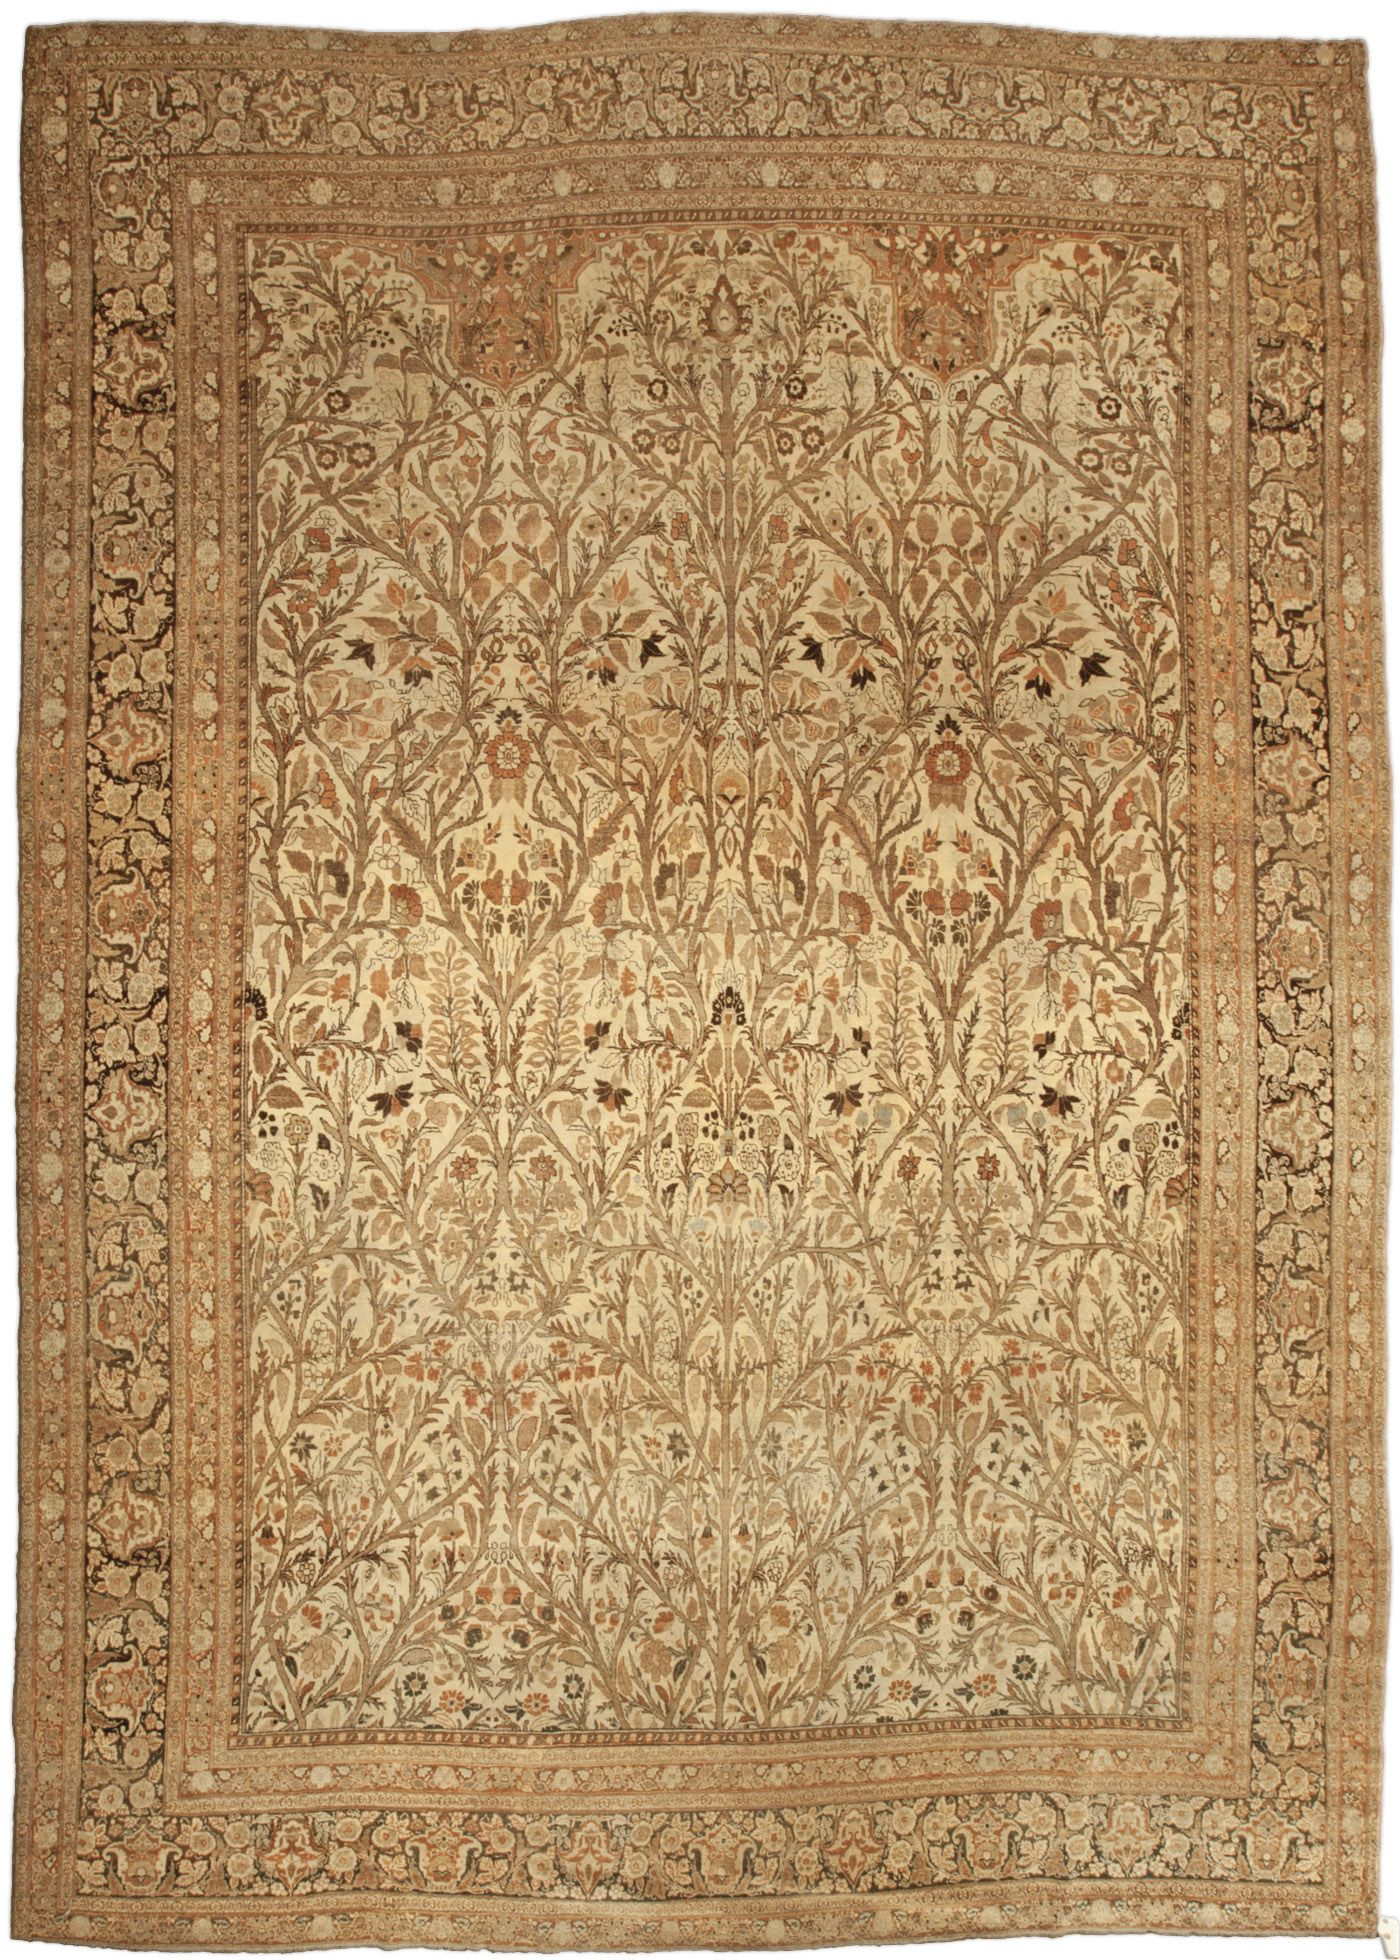 A Persian Tabriz rug (size adjusted) BB4818 - Of the antique Tabriz rugs in the collection, this size-adjusted example is distinguished by a lively allover pattern of leafy vinery that ...